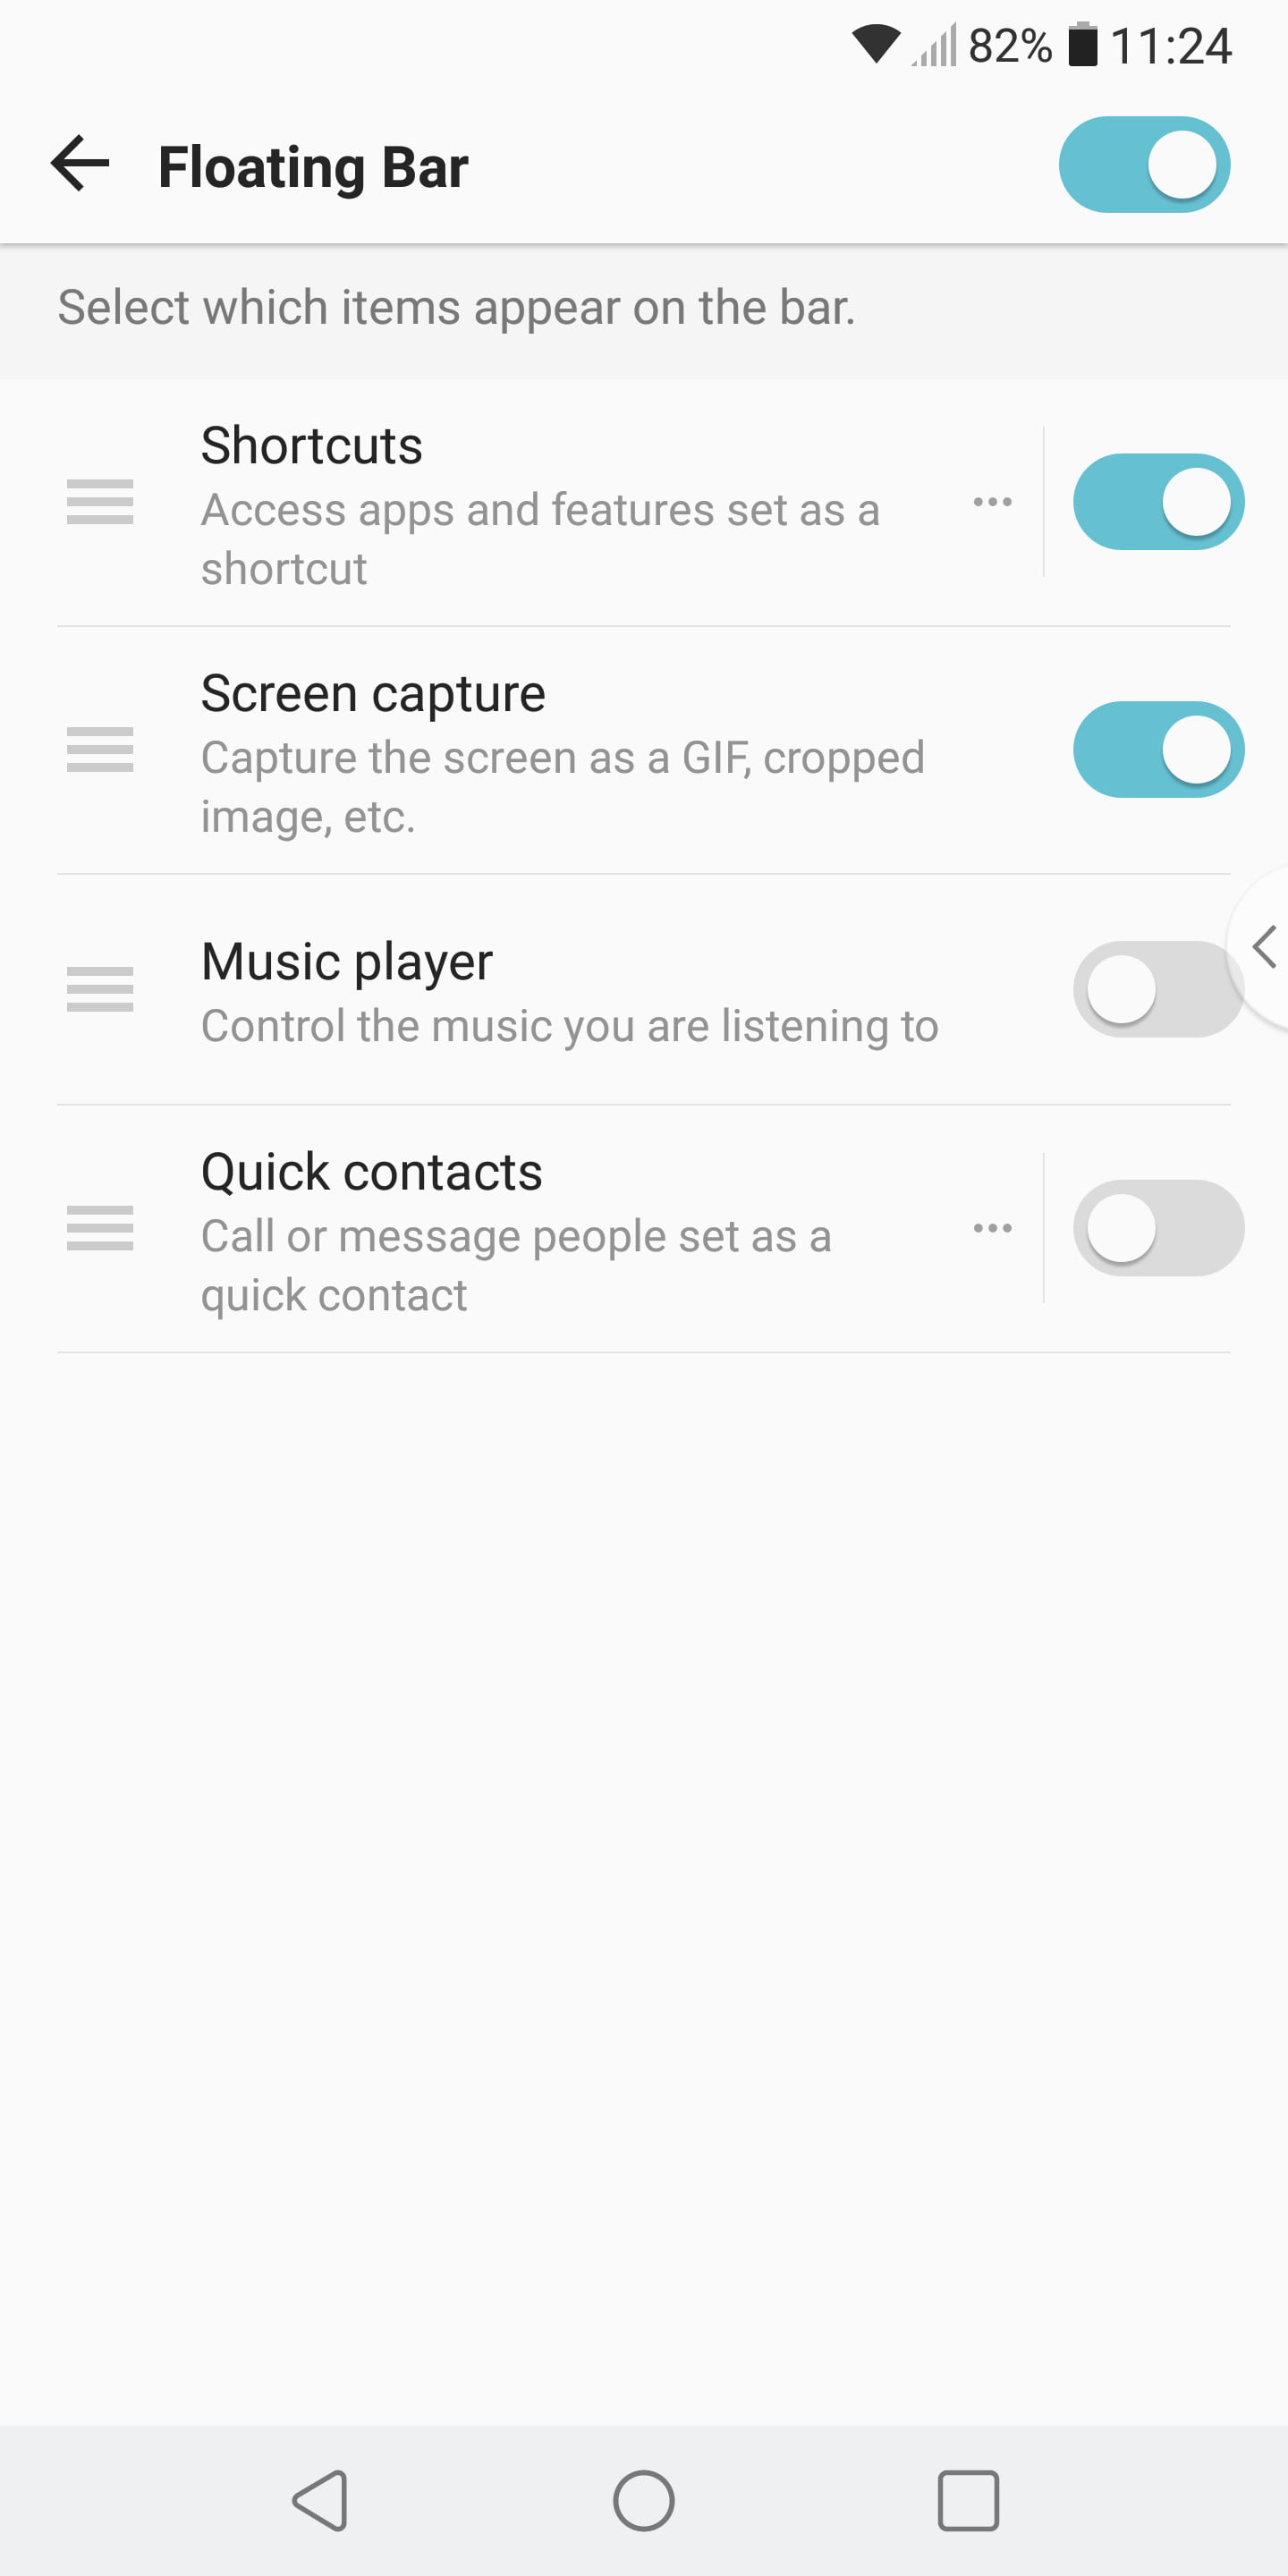 The Best Lg V30 Tips And Tricks To Help You Get More From Your Phone When Fan On Setting Is Selected Contacts Between R Floating Bar 3